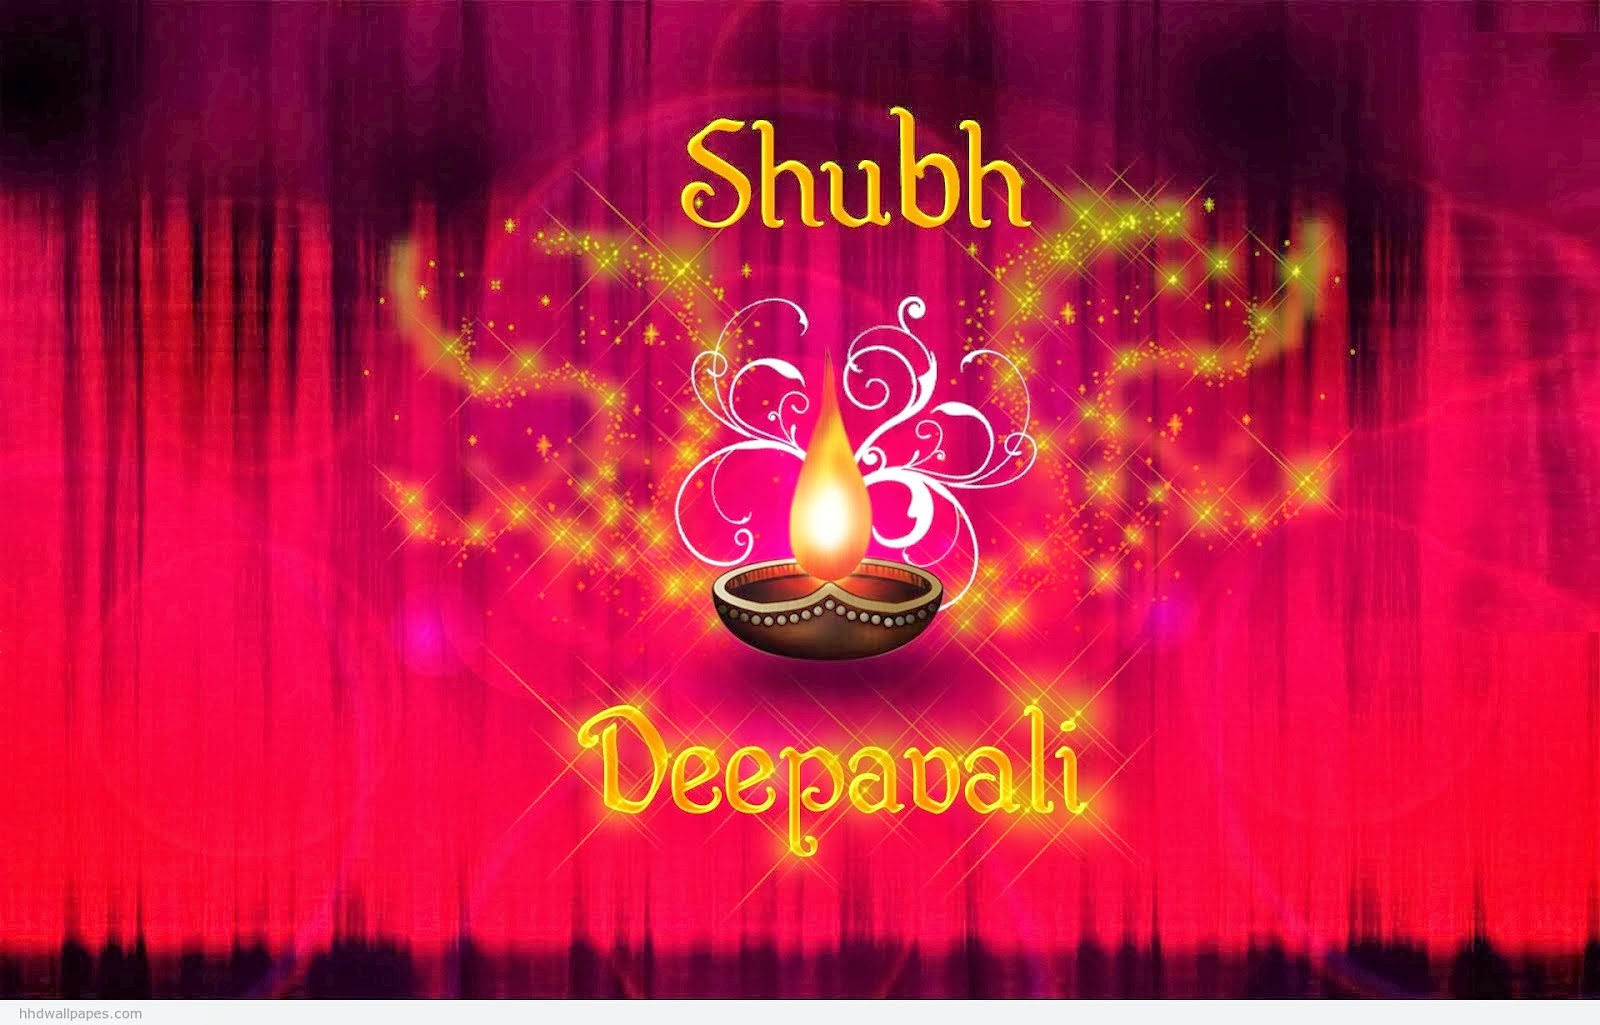 Happy Diwali Wallpapers And Backgrounds: Top Best Happy Diwali Wallpapers Desktop Mega Collection